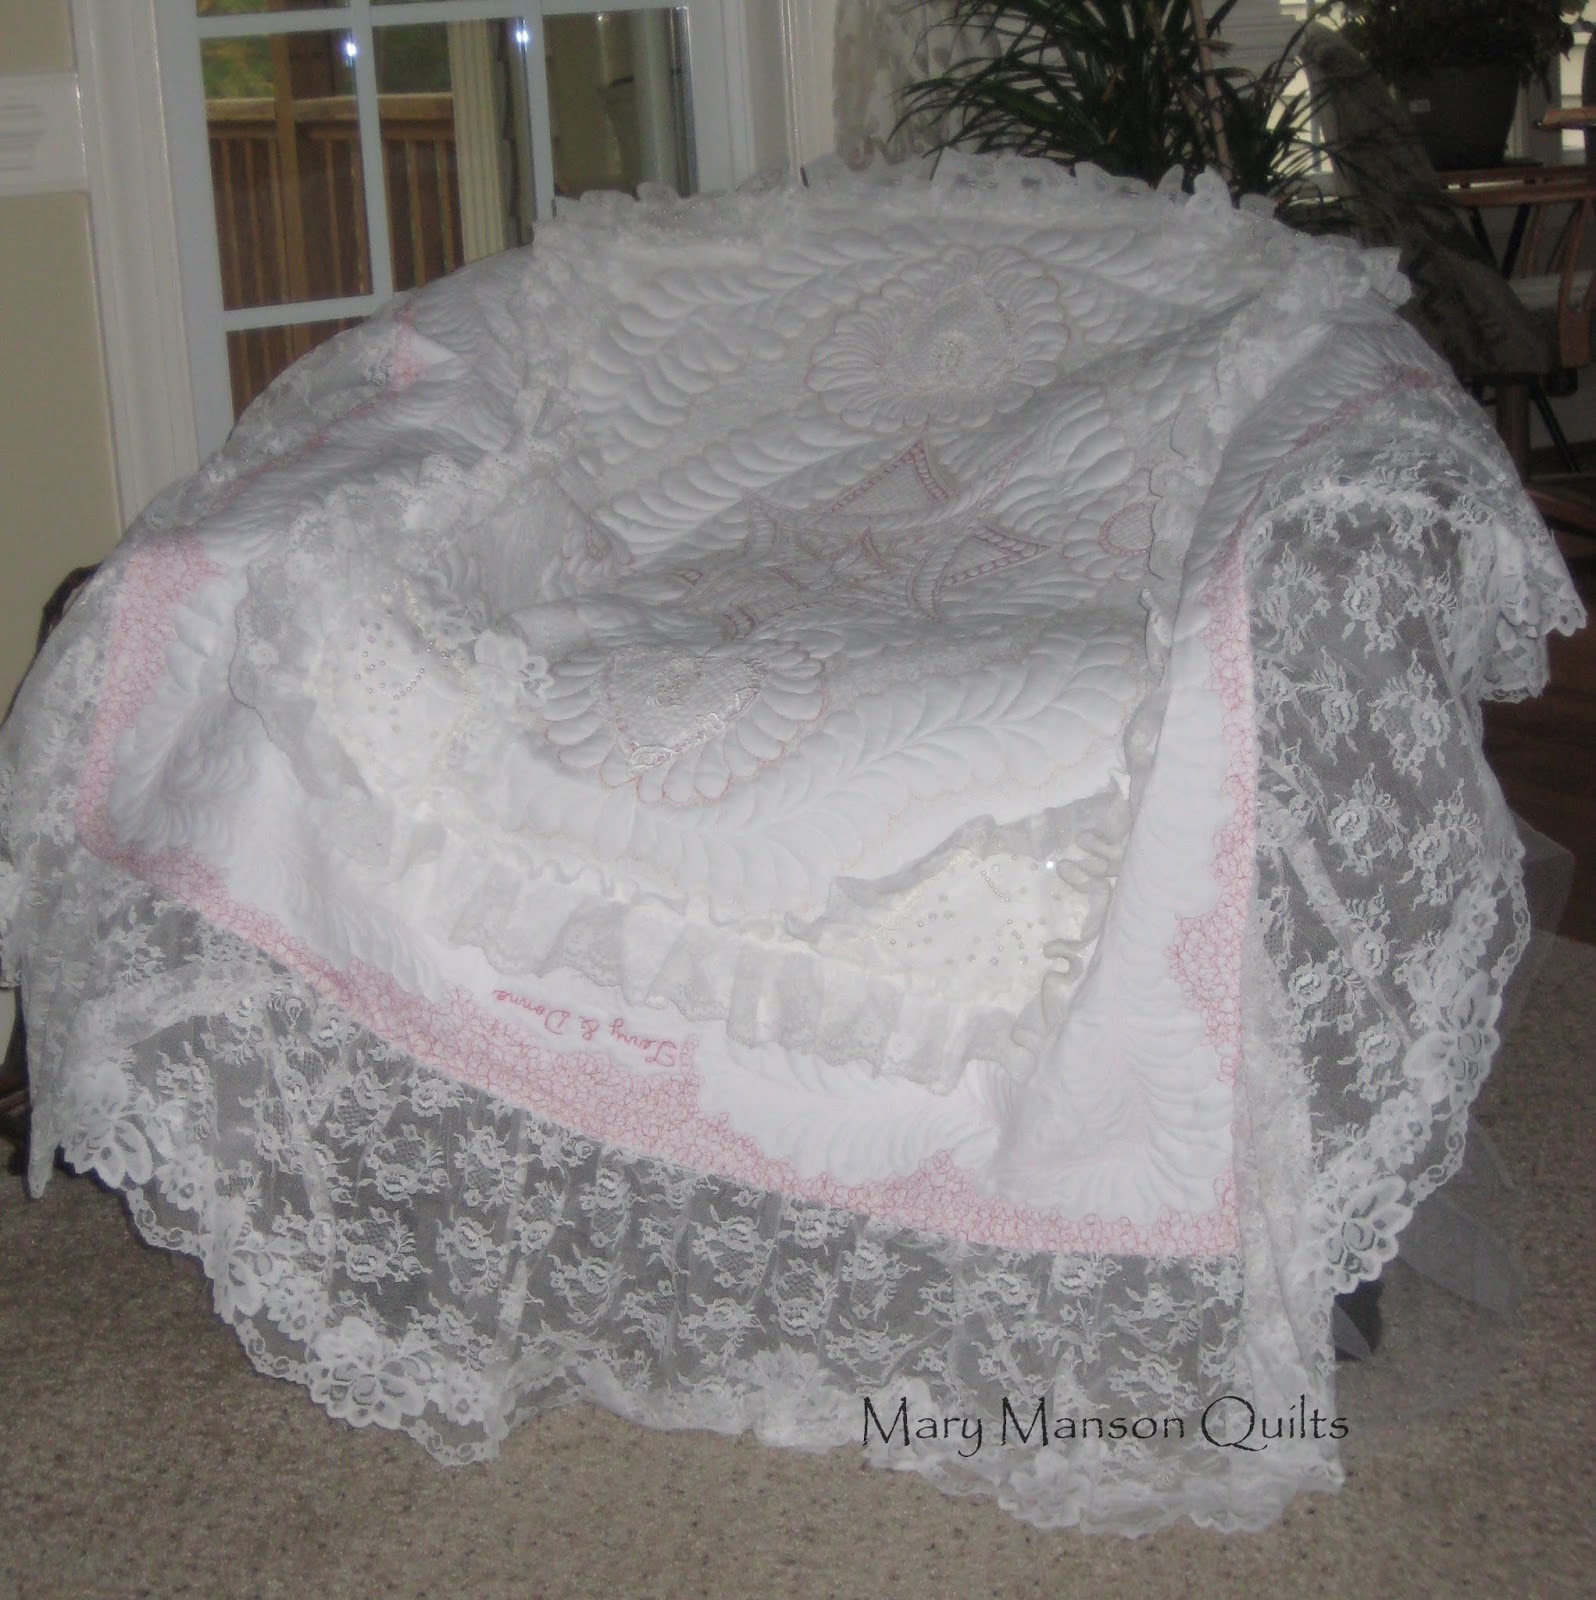 Mary Manson Quilts Wedding Dress Quilt Finished